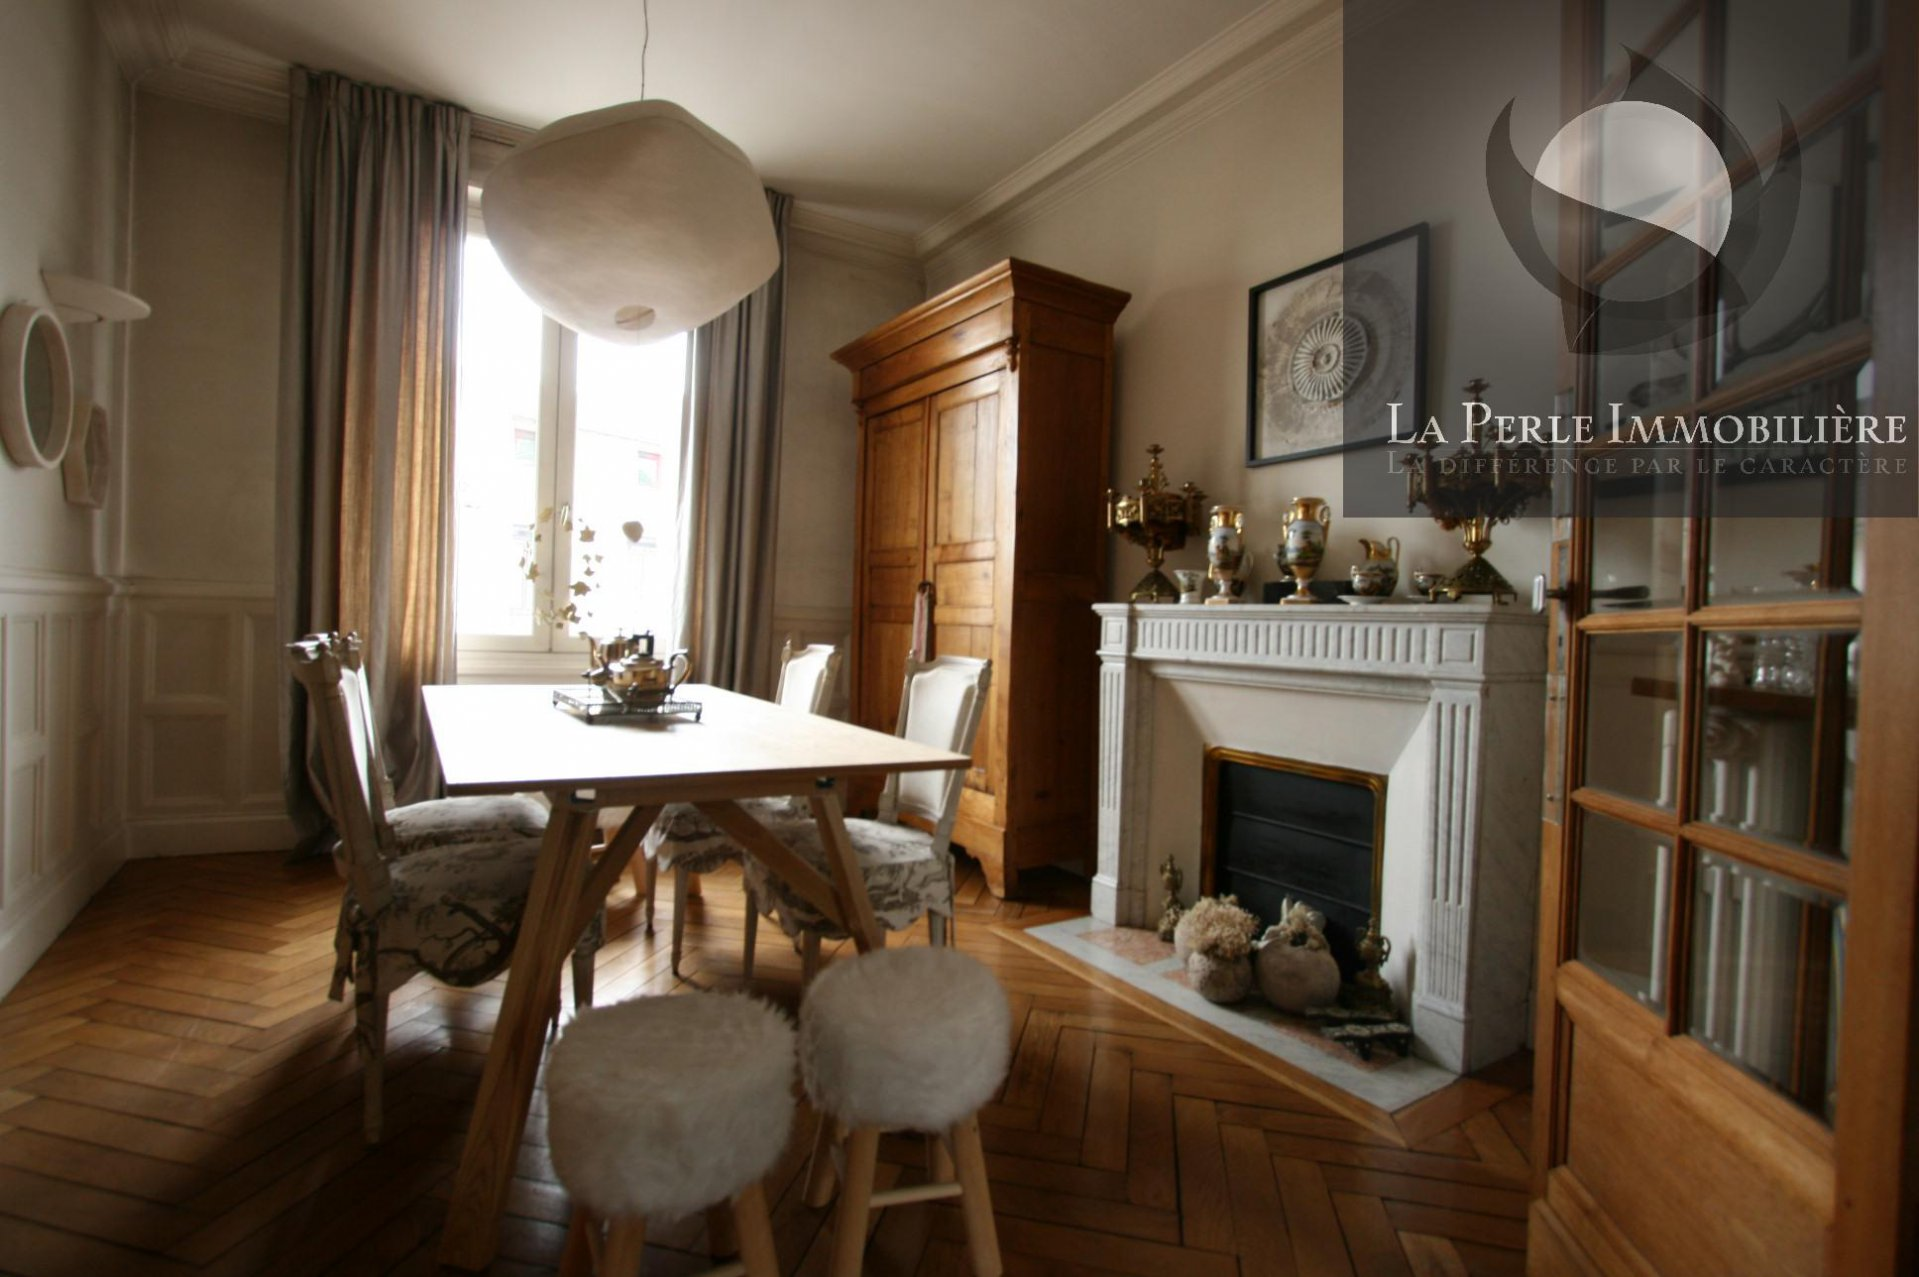 Dining room, wood floors, fireplace